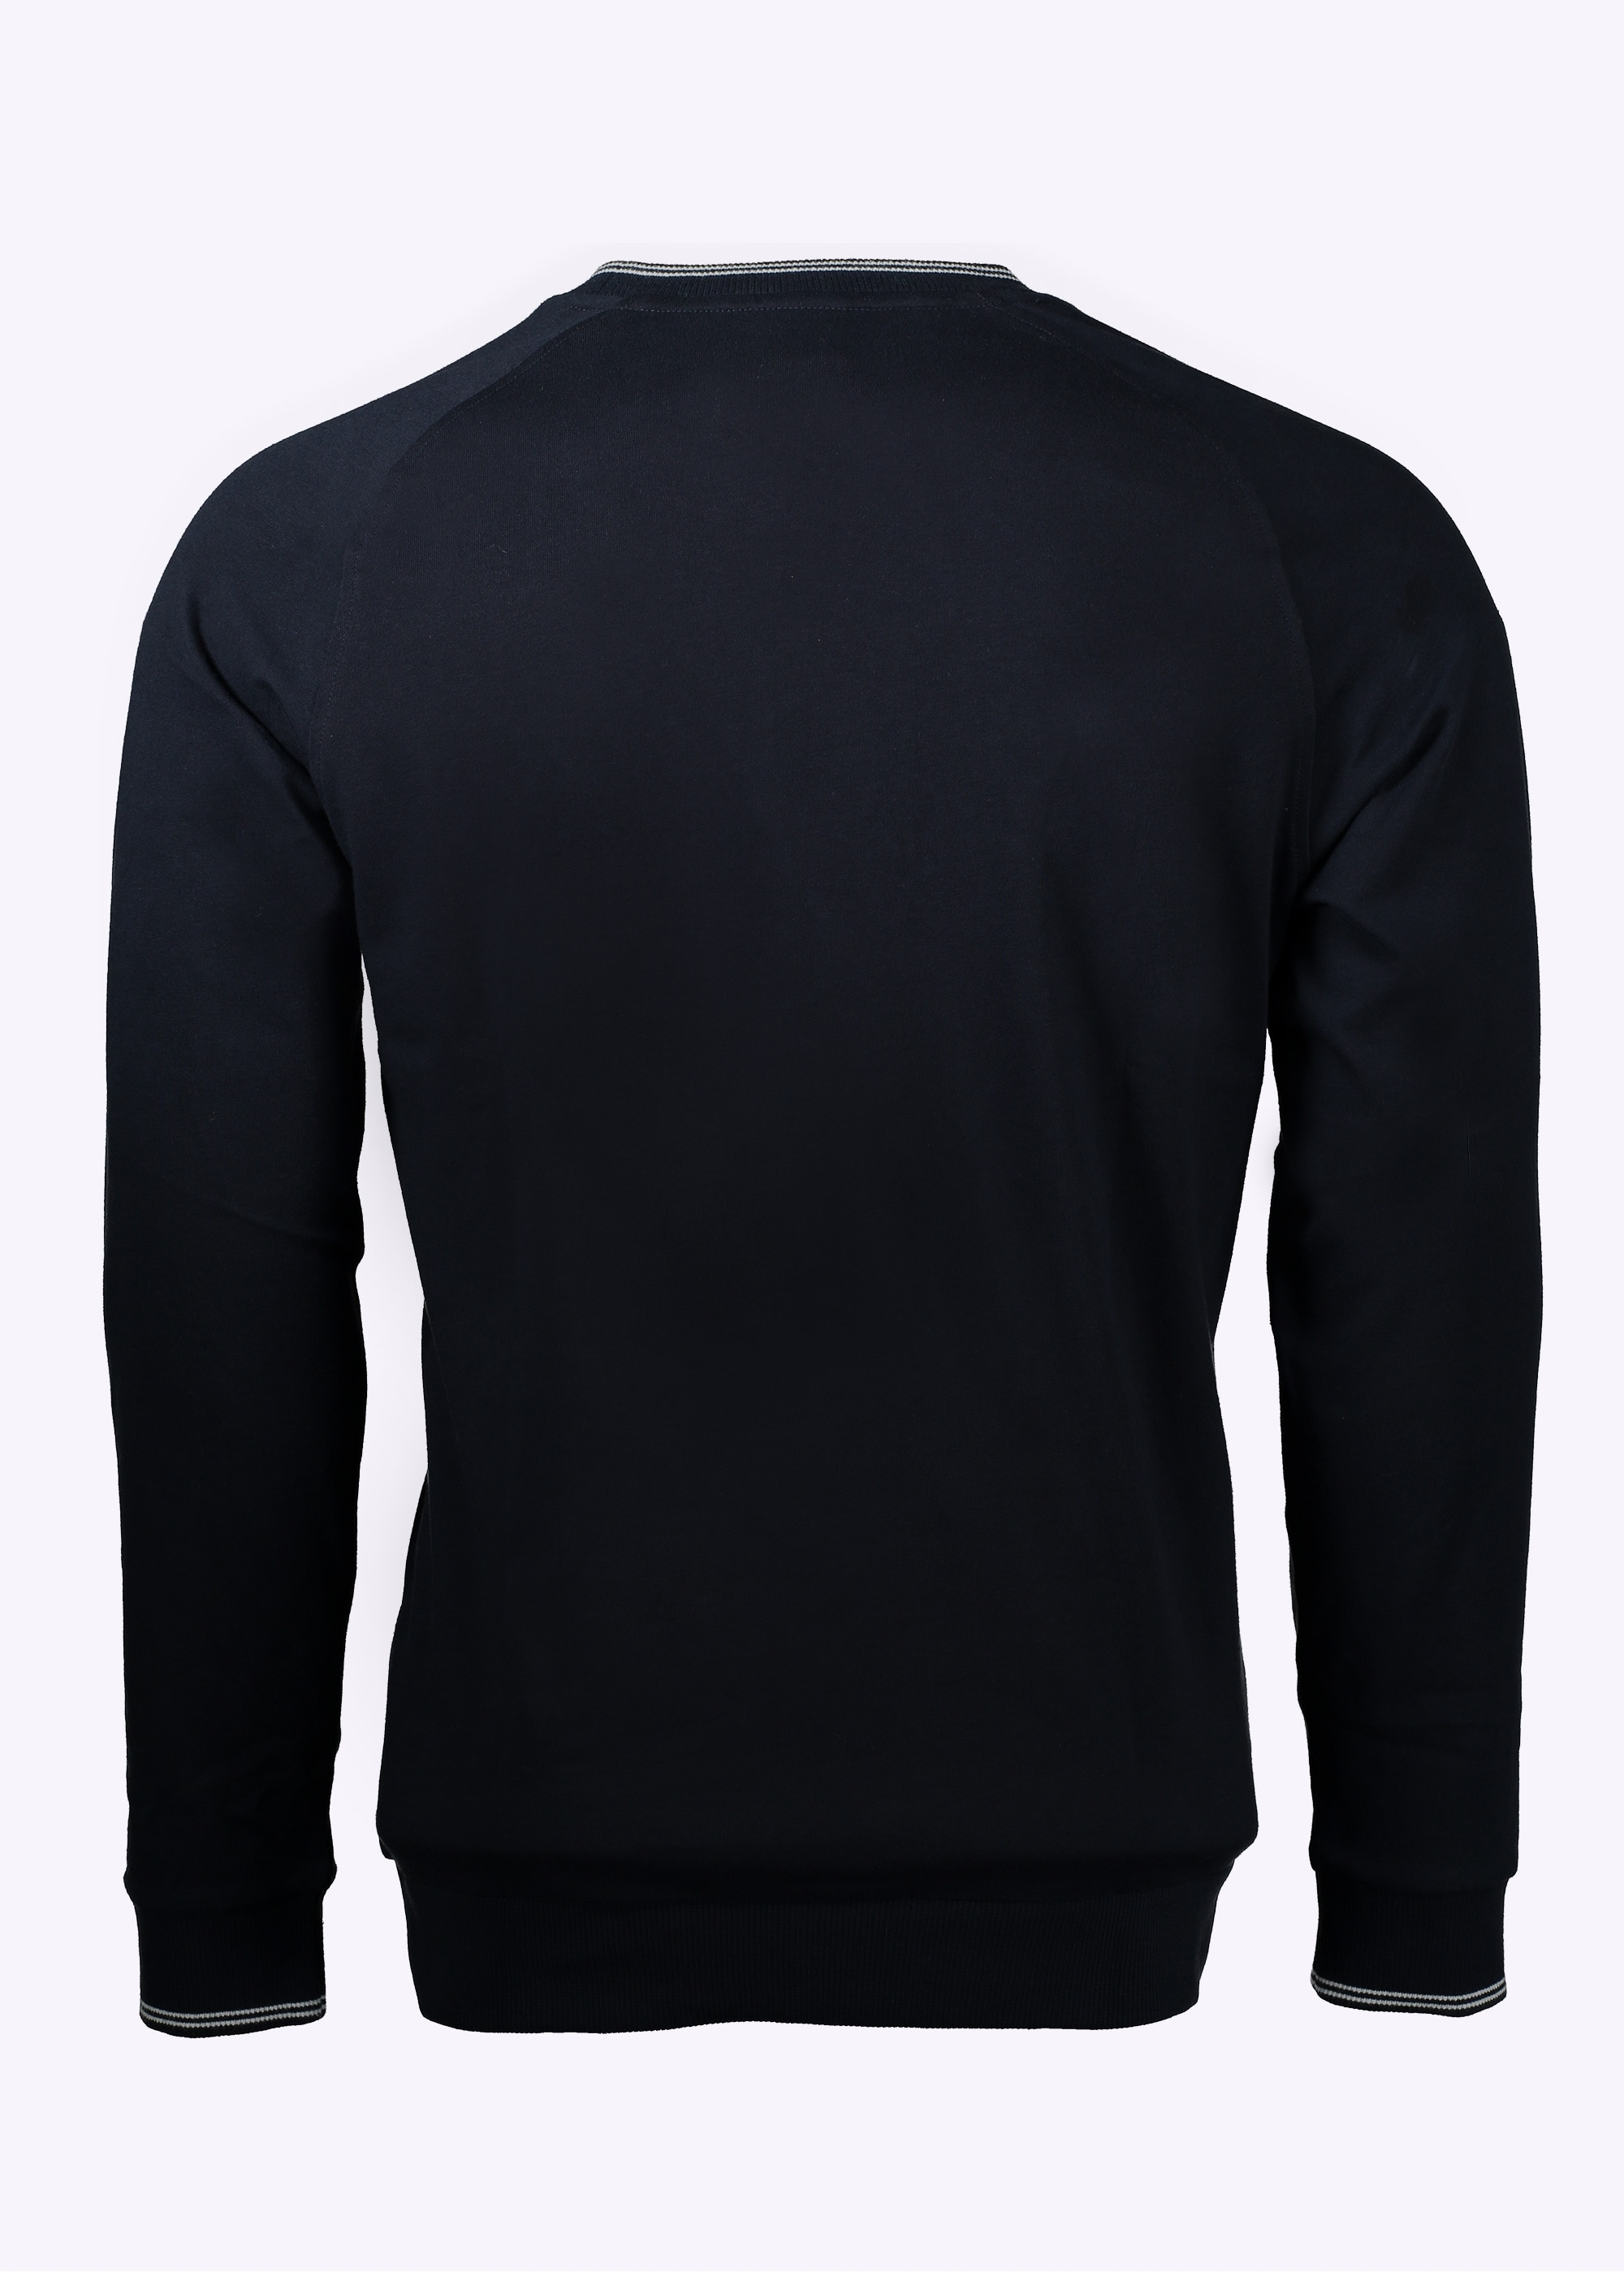 Made from waffle-textured jersey, this sweatshirt has a contrast woven panel at the hemline and cuffed sleeves with neat plackets. A straight fit, it is completed with a round neckline and ¾ sleeves. Model is cm tall and wearing a size Small.